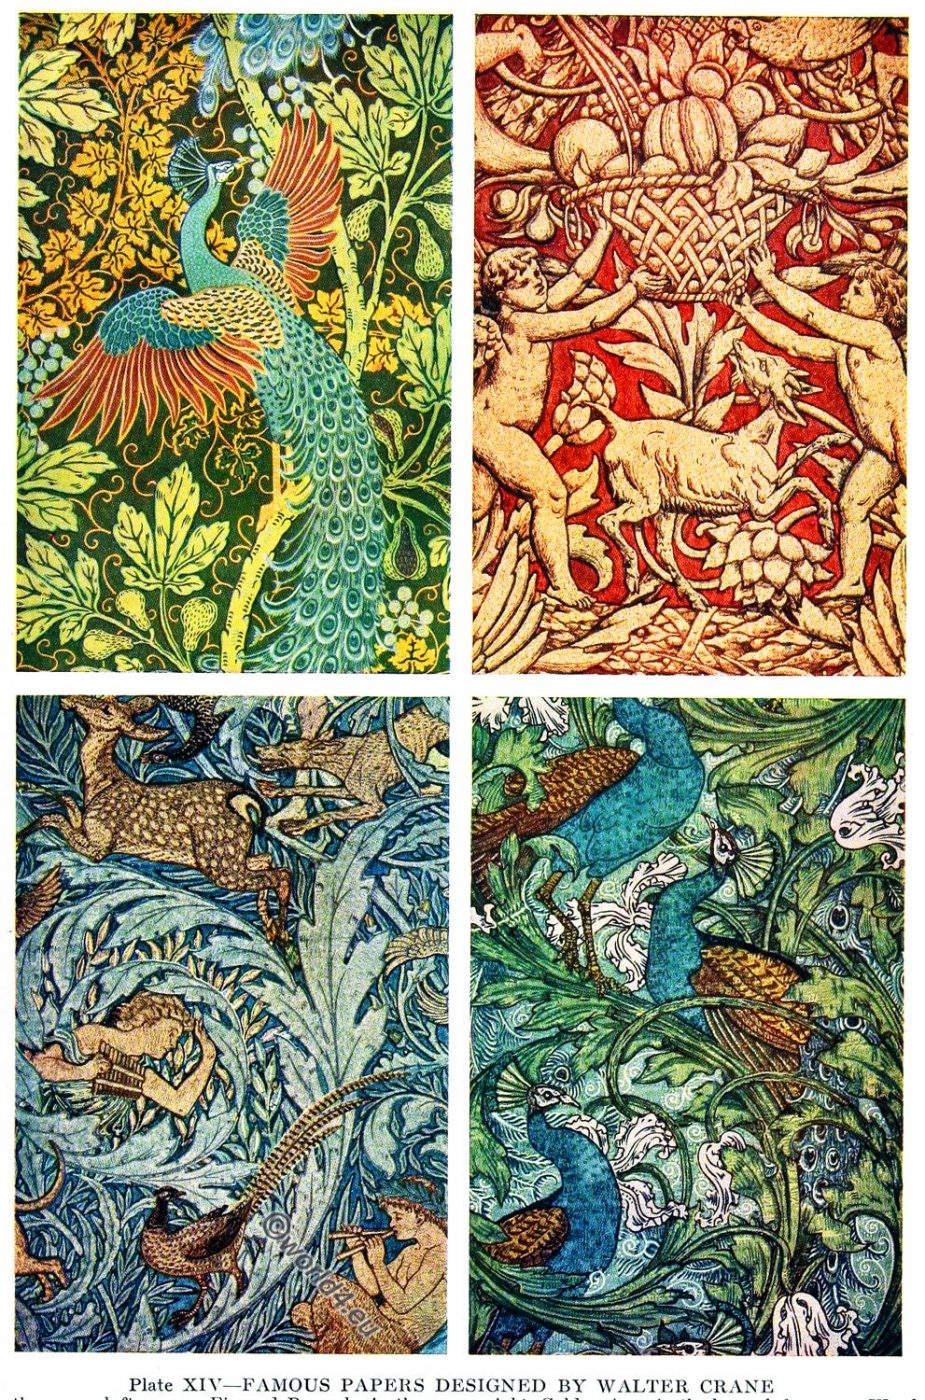 Peacock, Golden Age, papers, Walter Crane